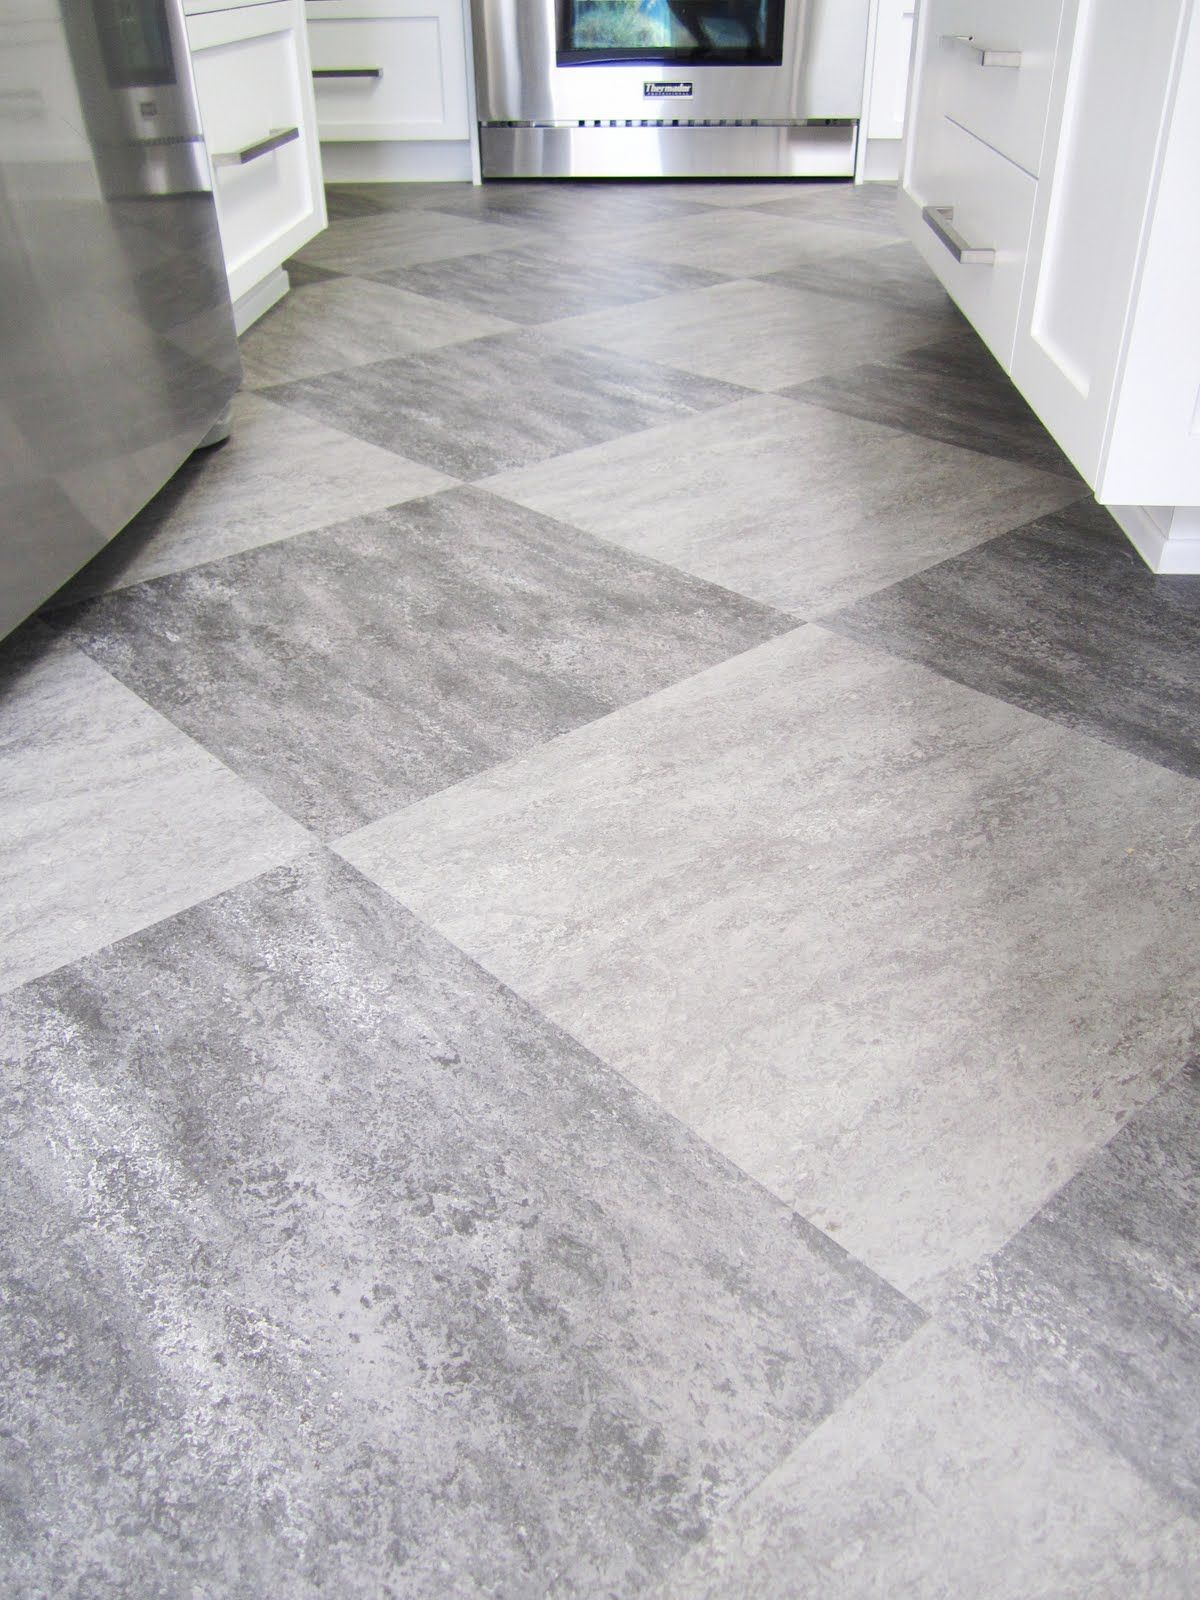 Good Kitchen Flooring Harlequin Tile Floors Harlequin Of Grey On Grey Tiles Is Used